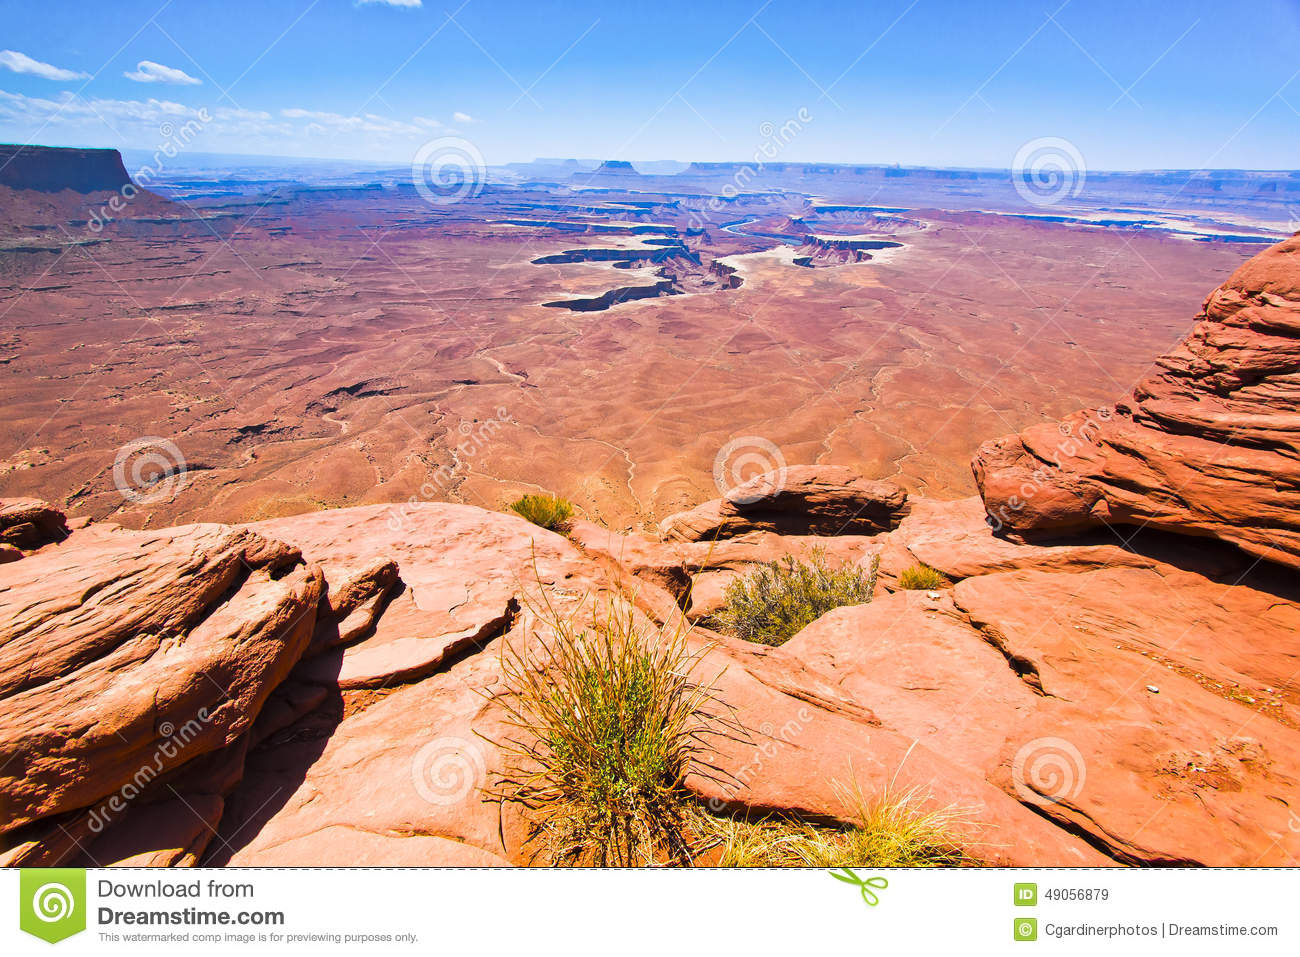 Moab Desert clipart #15, Download drawings